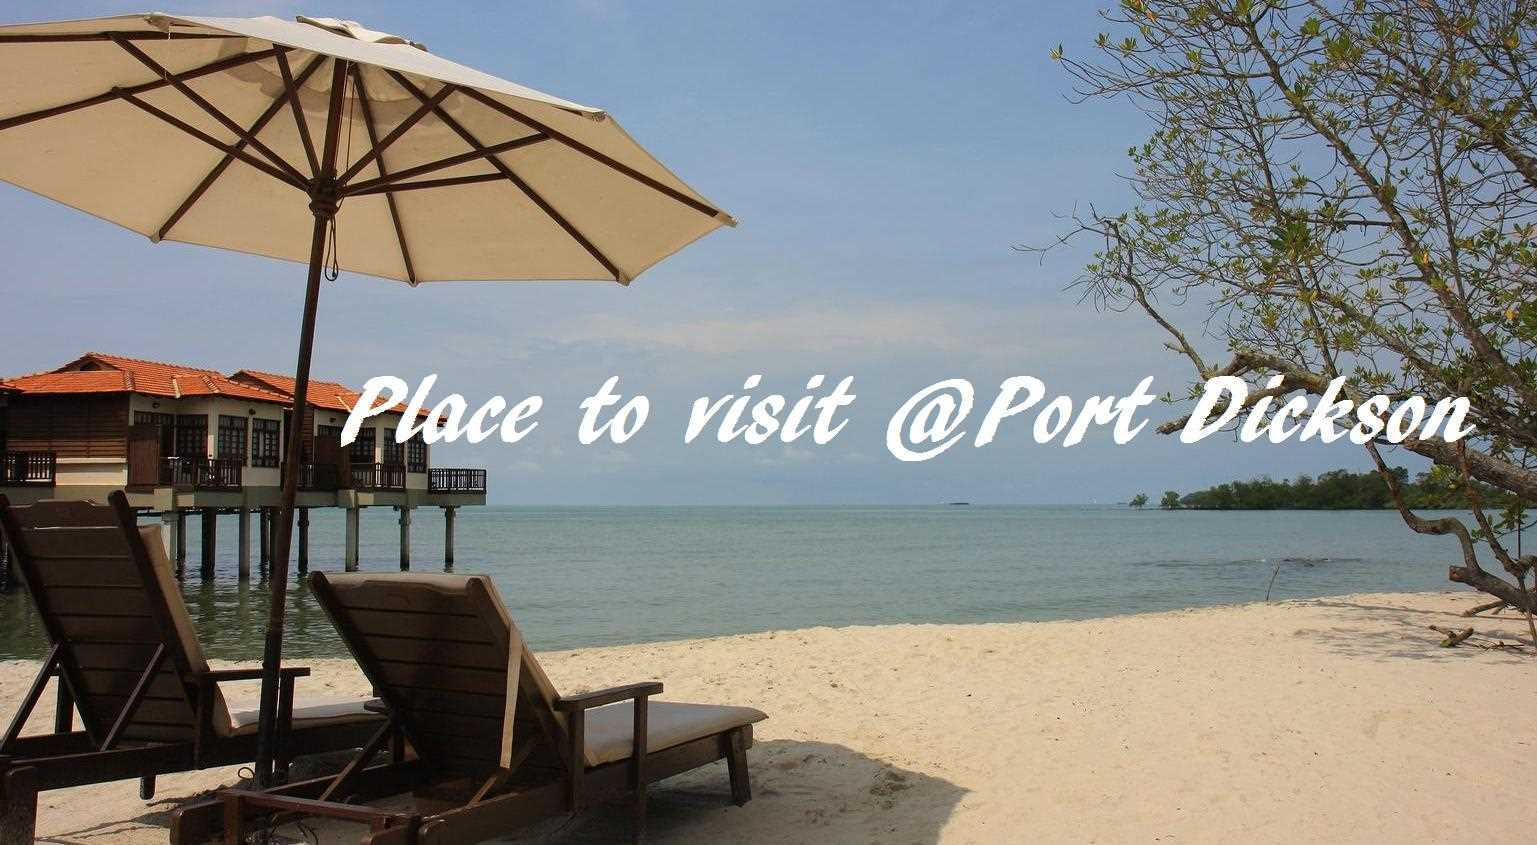 Place to Visit @Port Dickson Featured Image